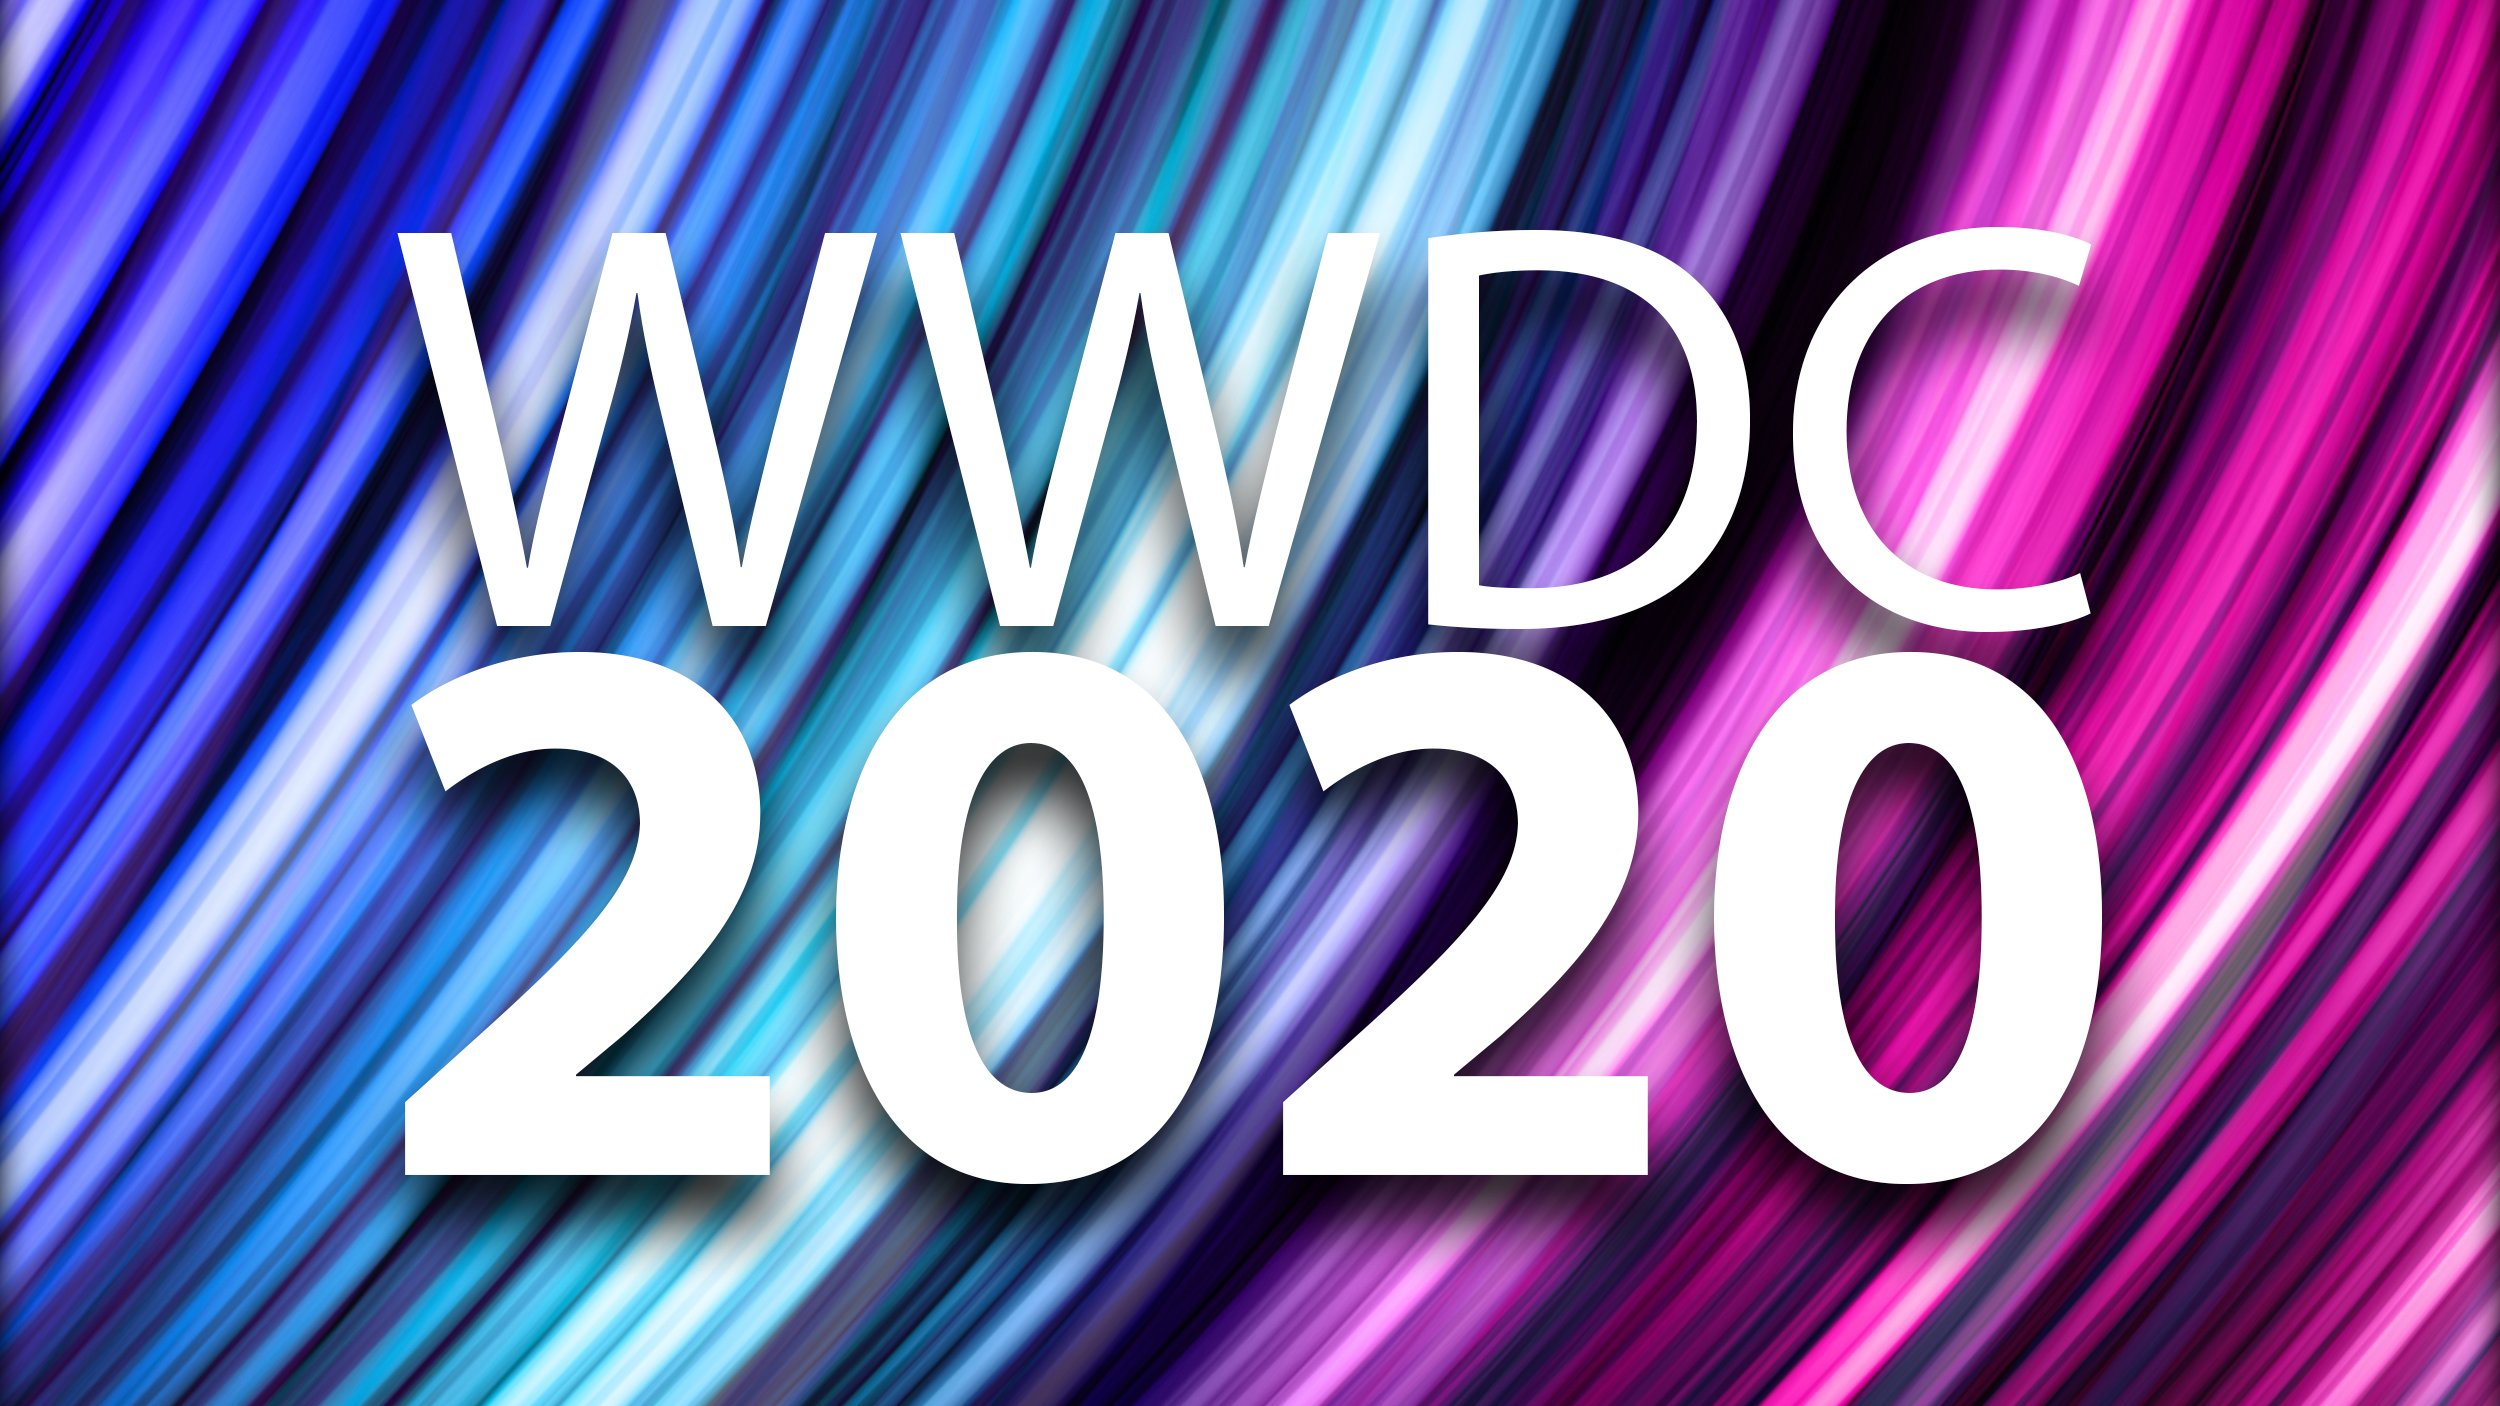 Apple WWDC 2020 will be an Online Event due to Coronavirus Outbreak